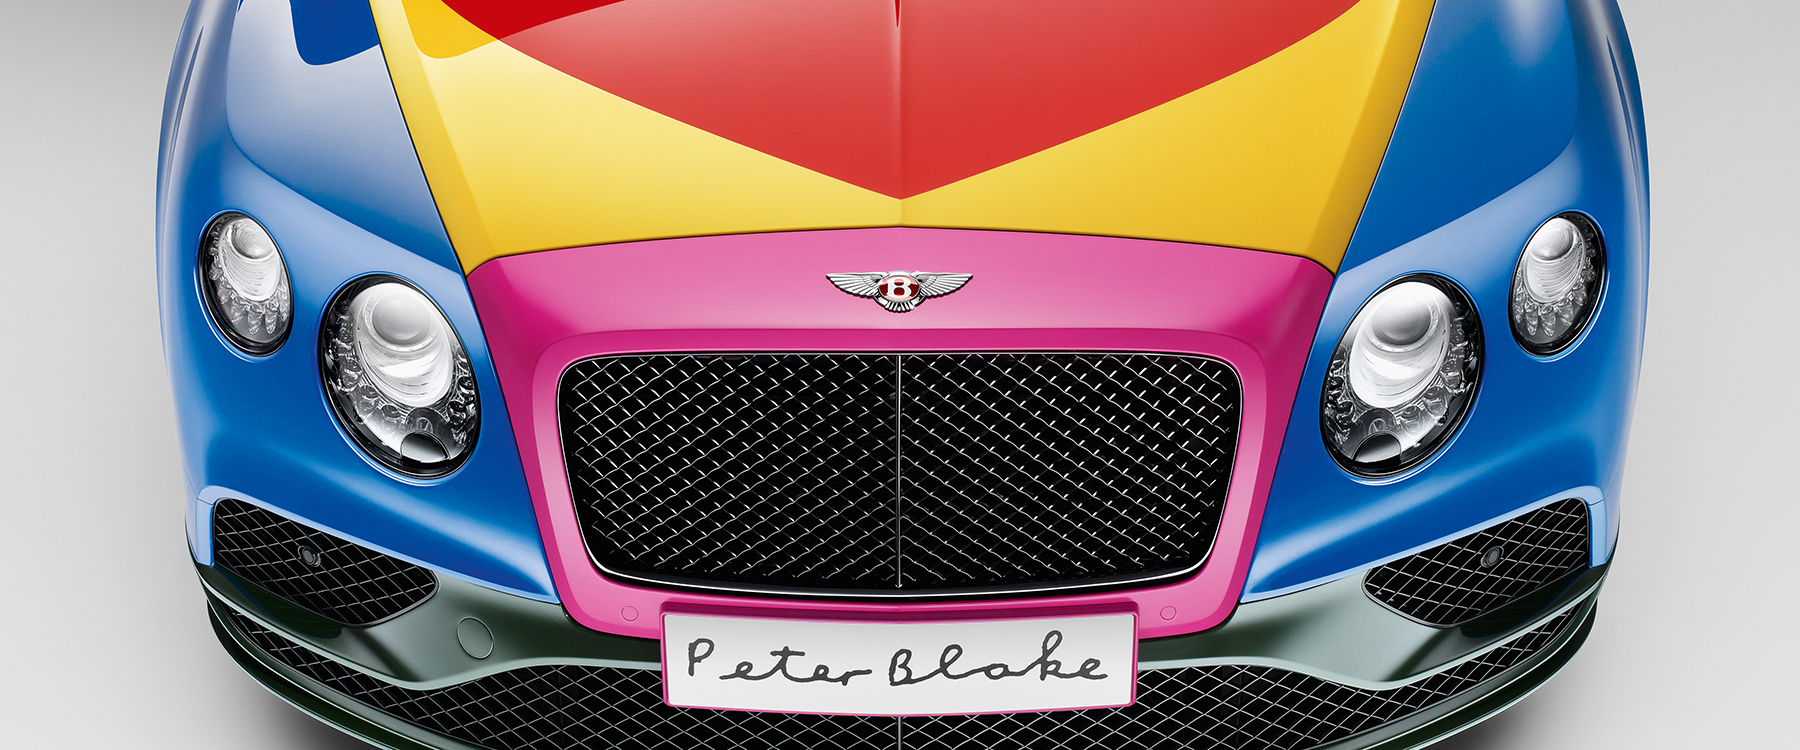 bentley-continental-GT-V8-S-peter-blake-edition-designboom-header